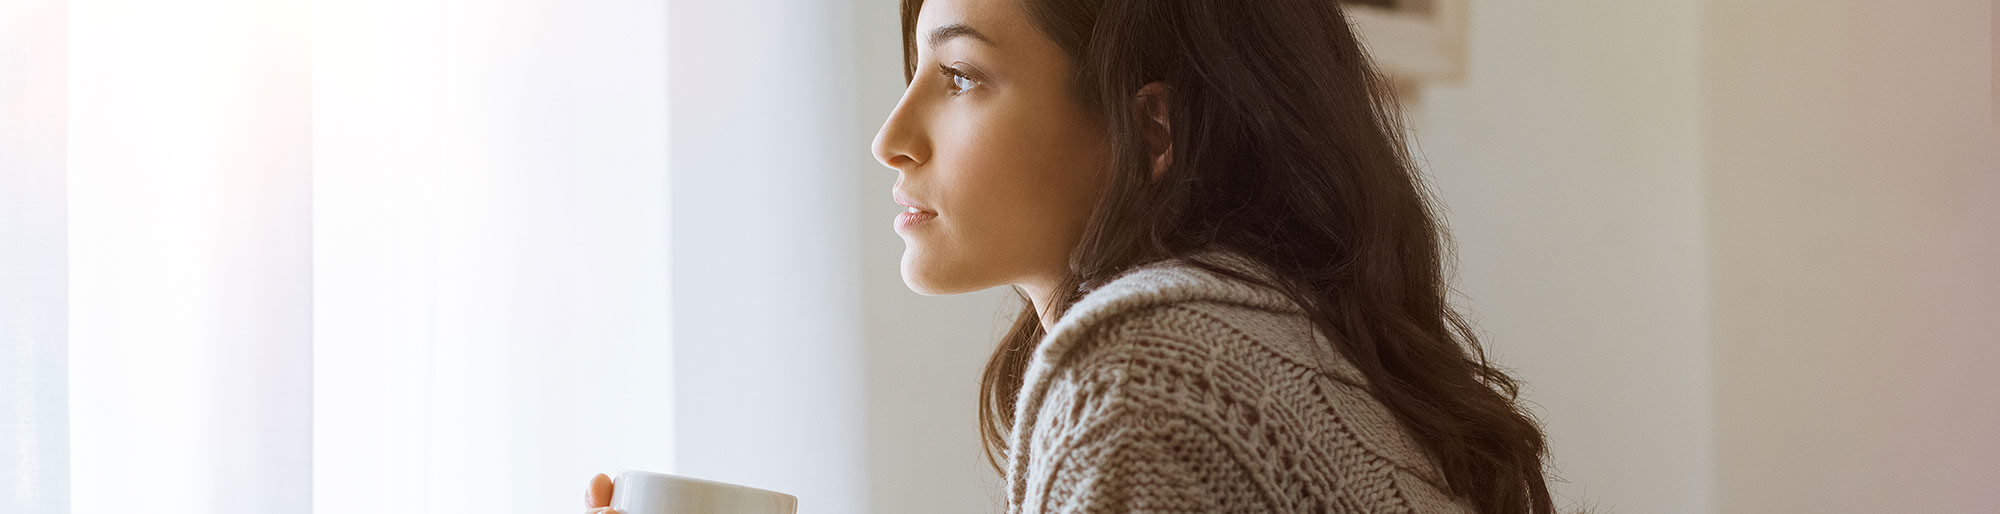 Thinking about abortion? Learn more